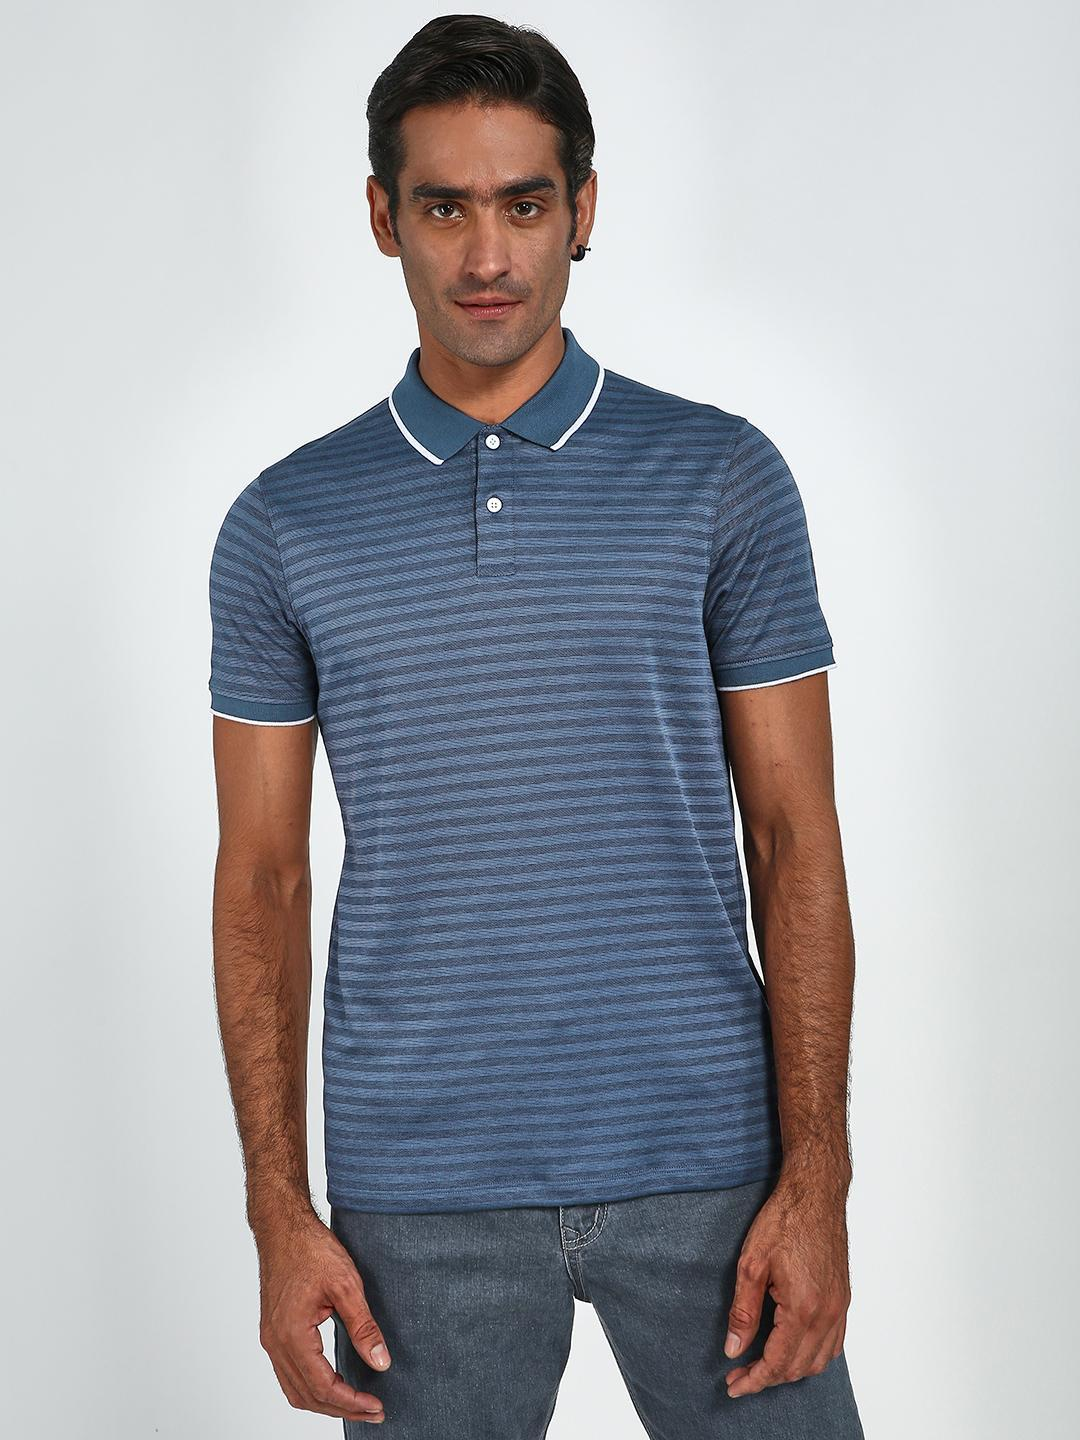 Blue Saint Navy Horizontal Stripe Contrast Tipping Polo Shirt 1